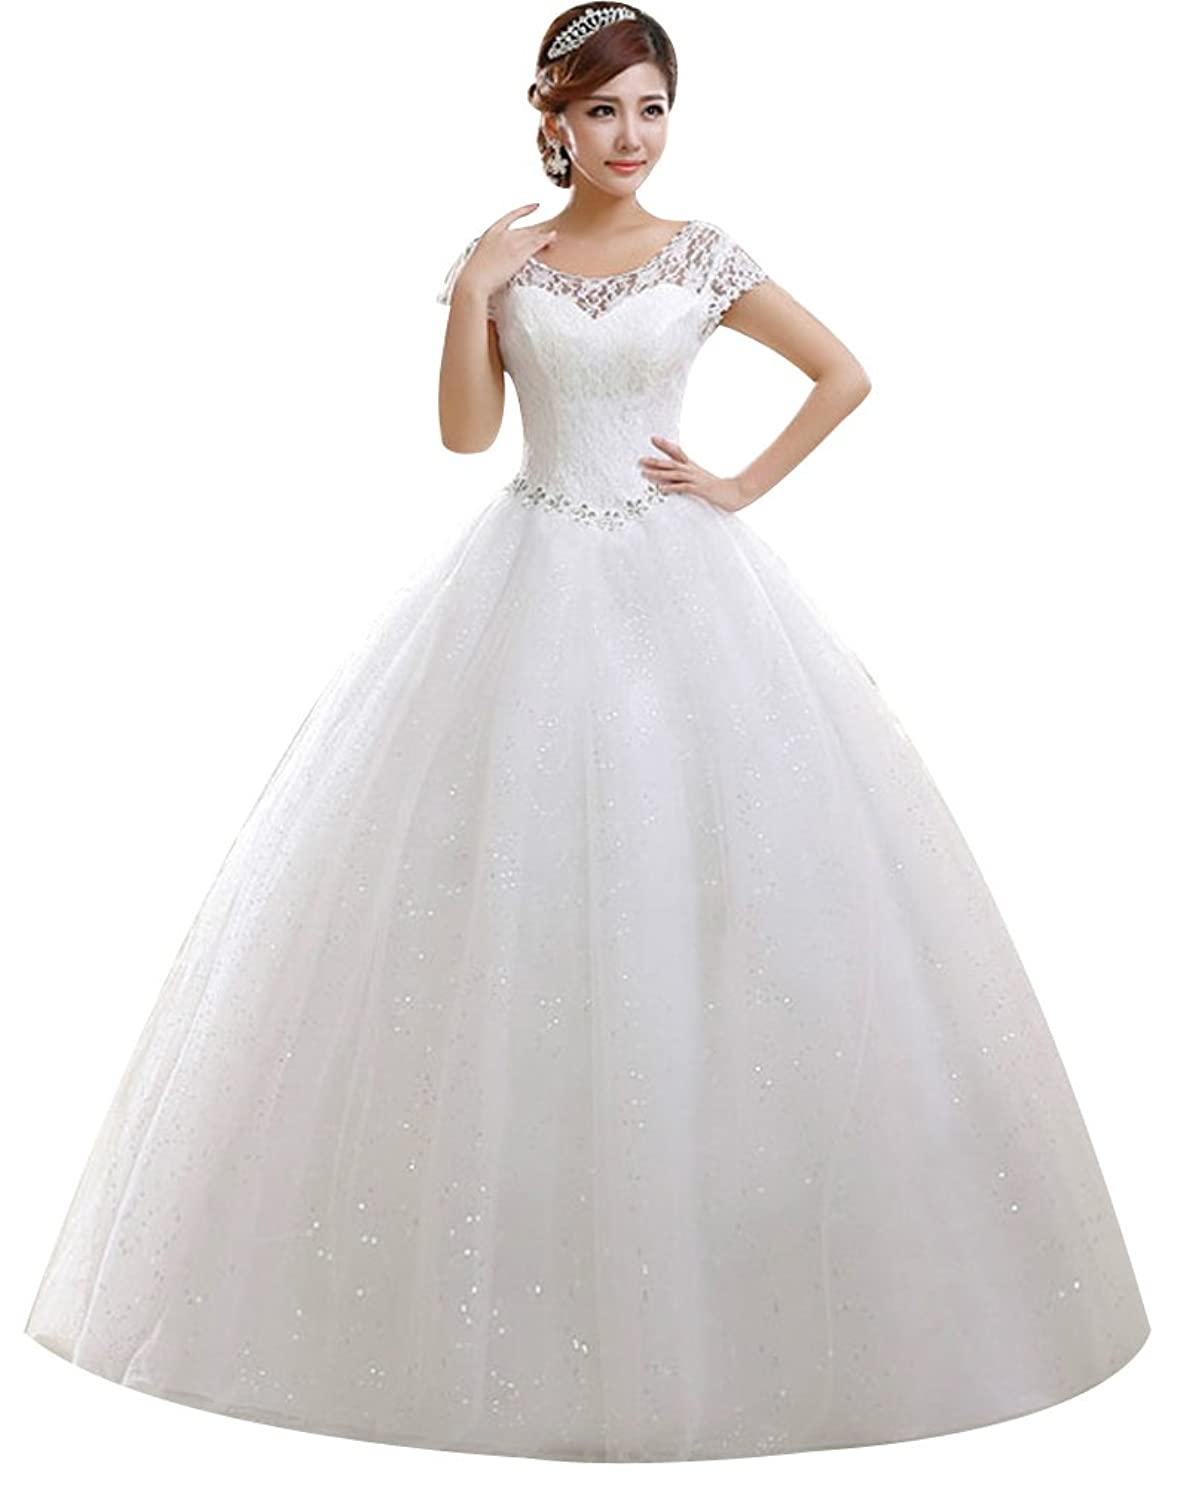 top 10 best wedding dress reviews mpe77nrby amazon com wedding dresses